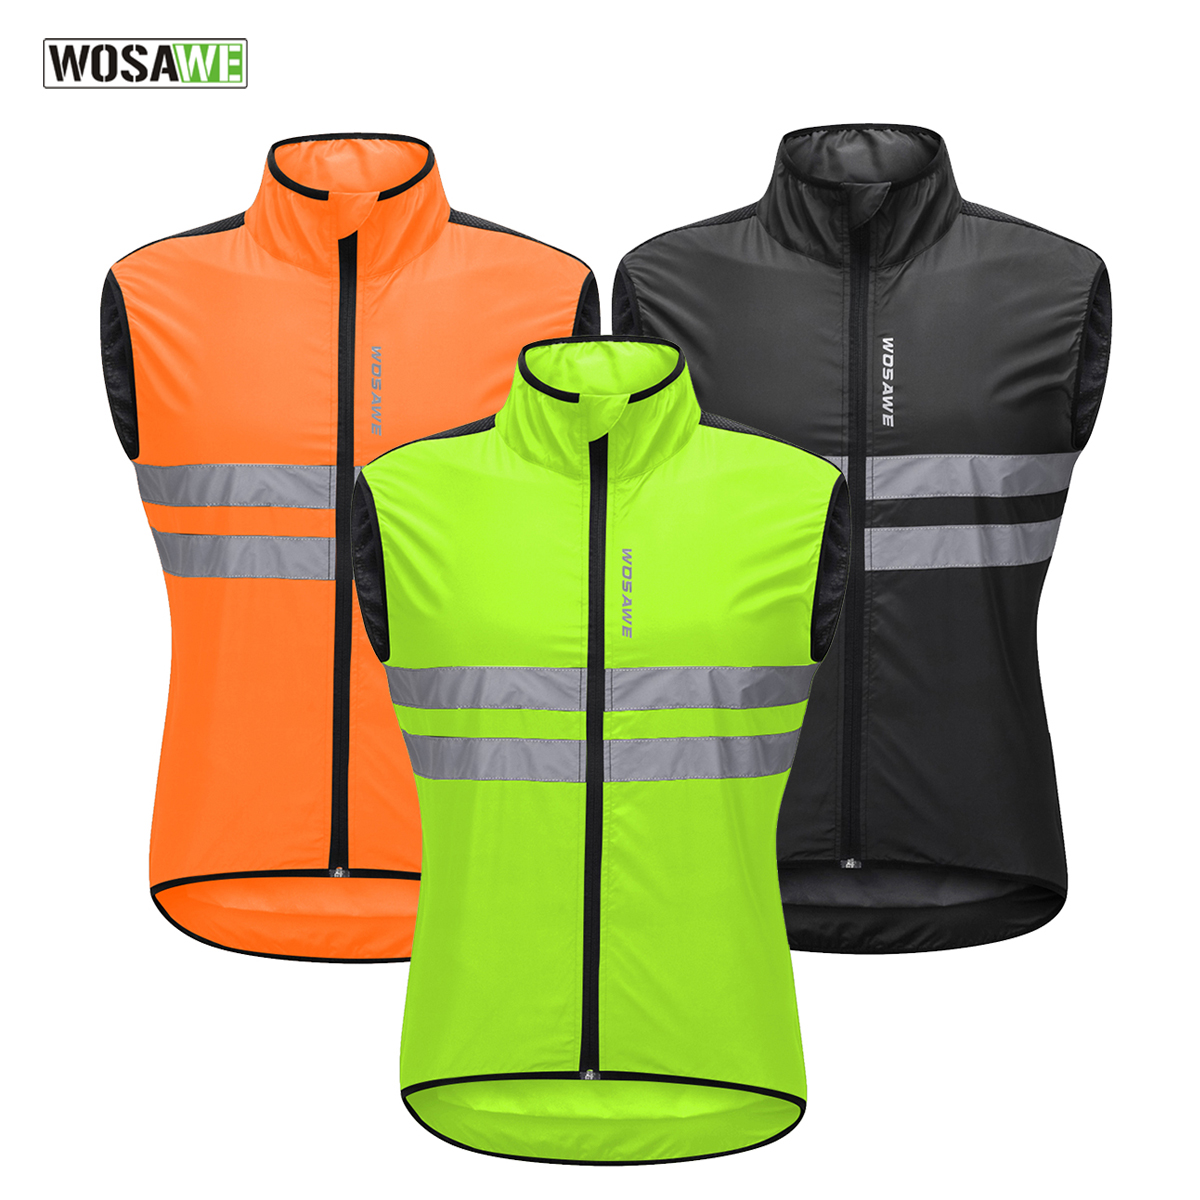 WOSAWE Cycling Vest High Visibility Reflective Safety Vest Night Running Riding Motorcycle Jacket Waistcoat Green /size M-3XL набор sony singstar dance party pack